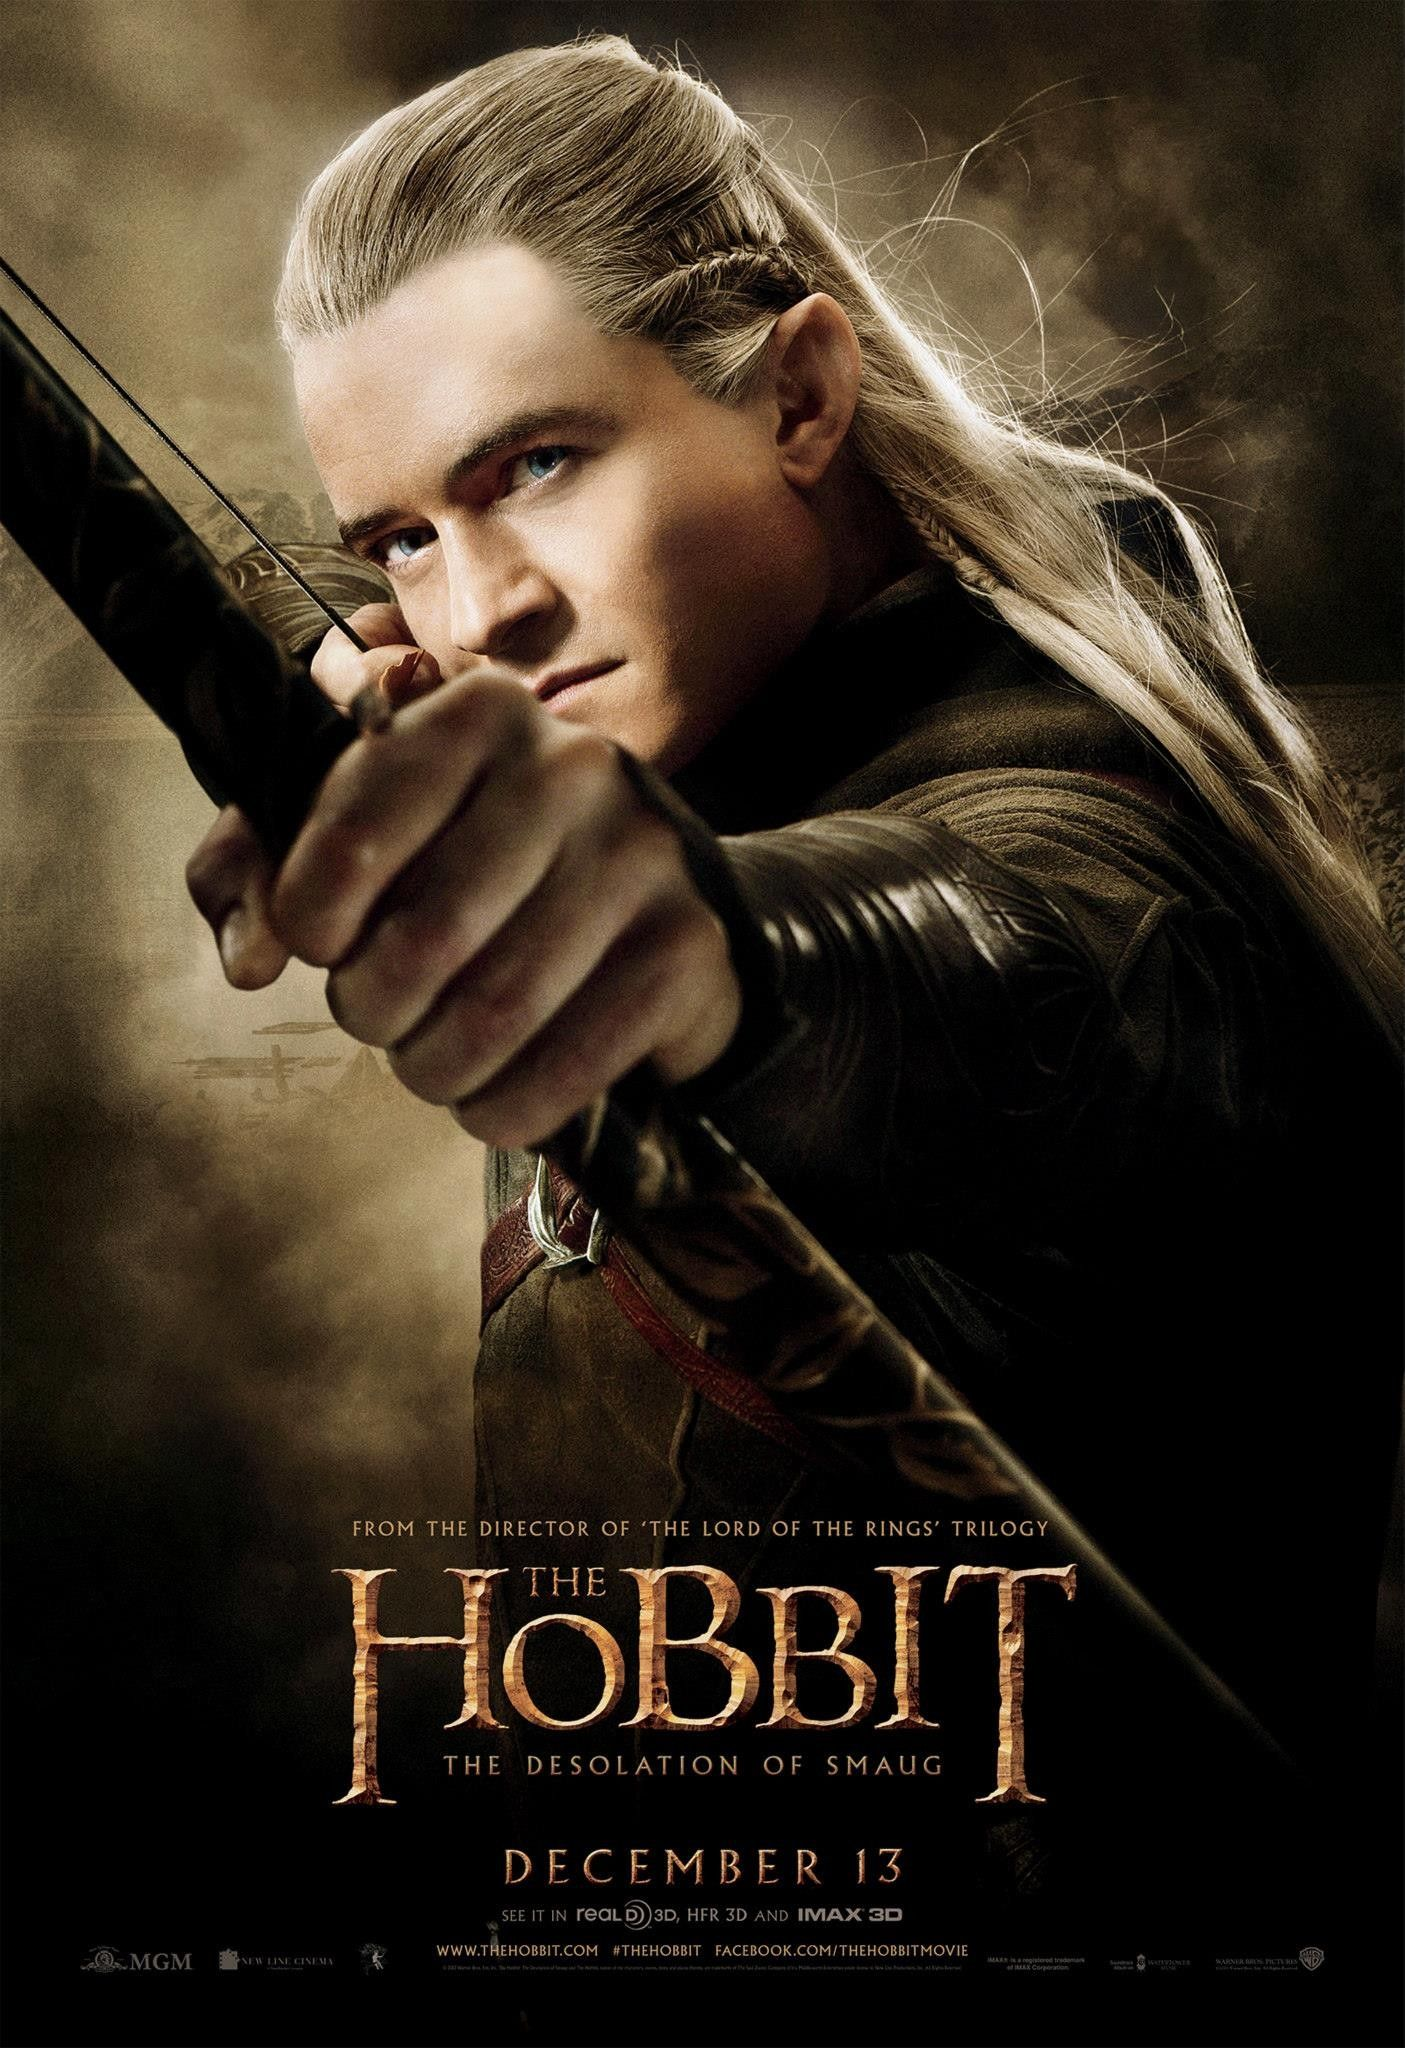 desolation of smaug Yify yts - the hobbit: the desolation of smaug the dwarves, along with bilbo baggins and gandalf the grey, continue their quest to reclaim erebor, their homeland, from smaug bilbo baggins.